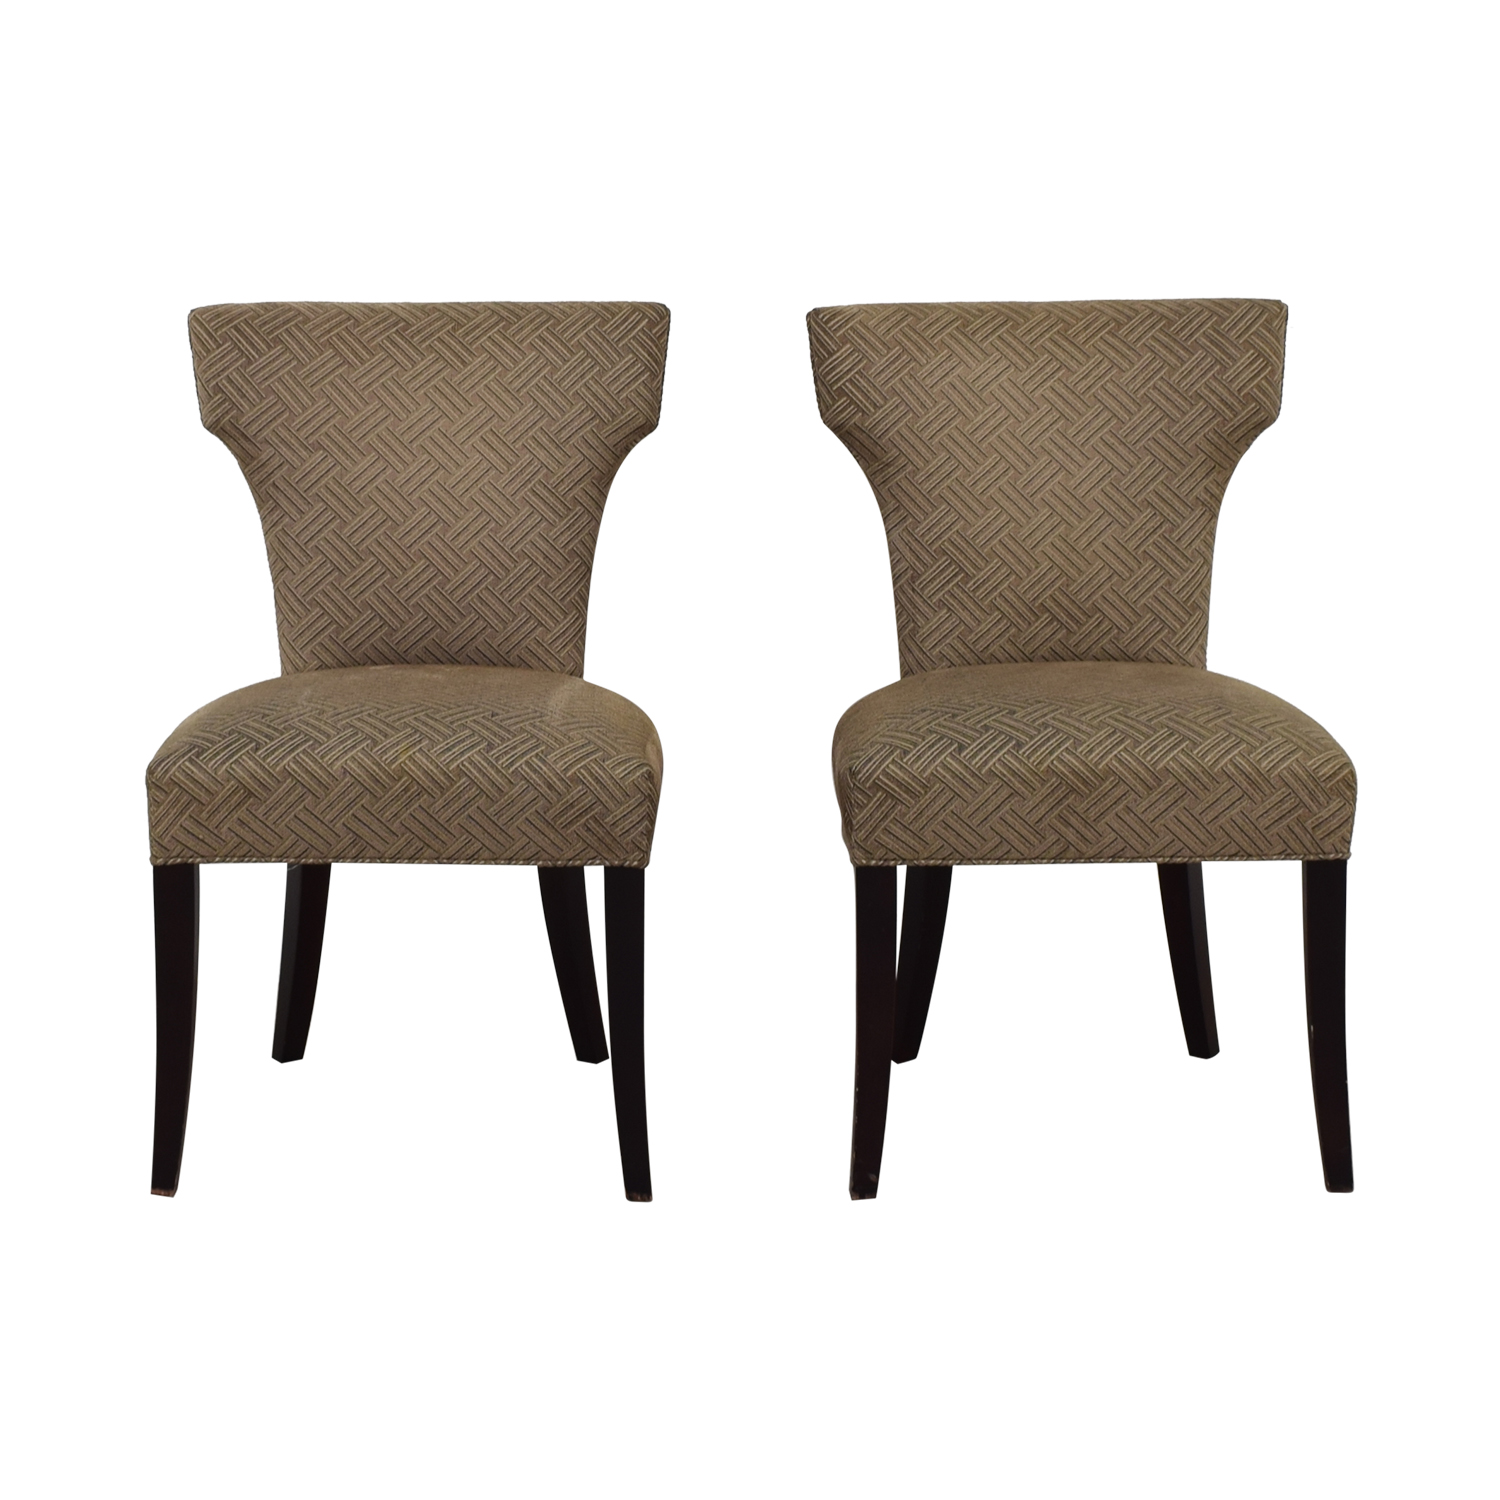 Crate & Barrel Crate & Barrel Sasha Upholstered Dining Chairs nyc